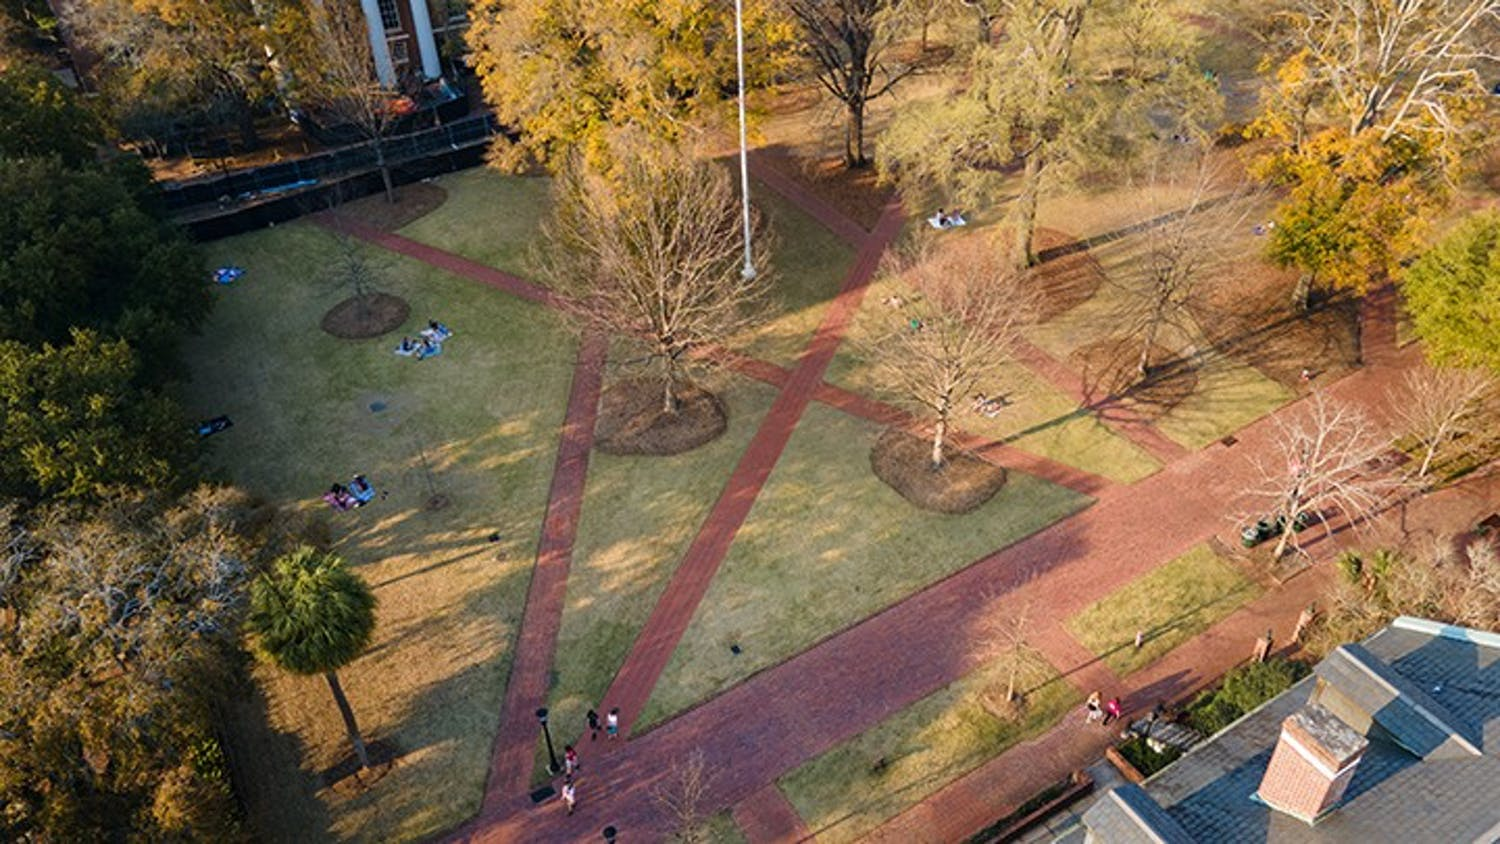 An aerial view of the Horseshoe located on the University of South Carolina's campus.